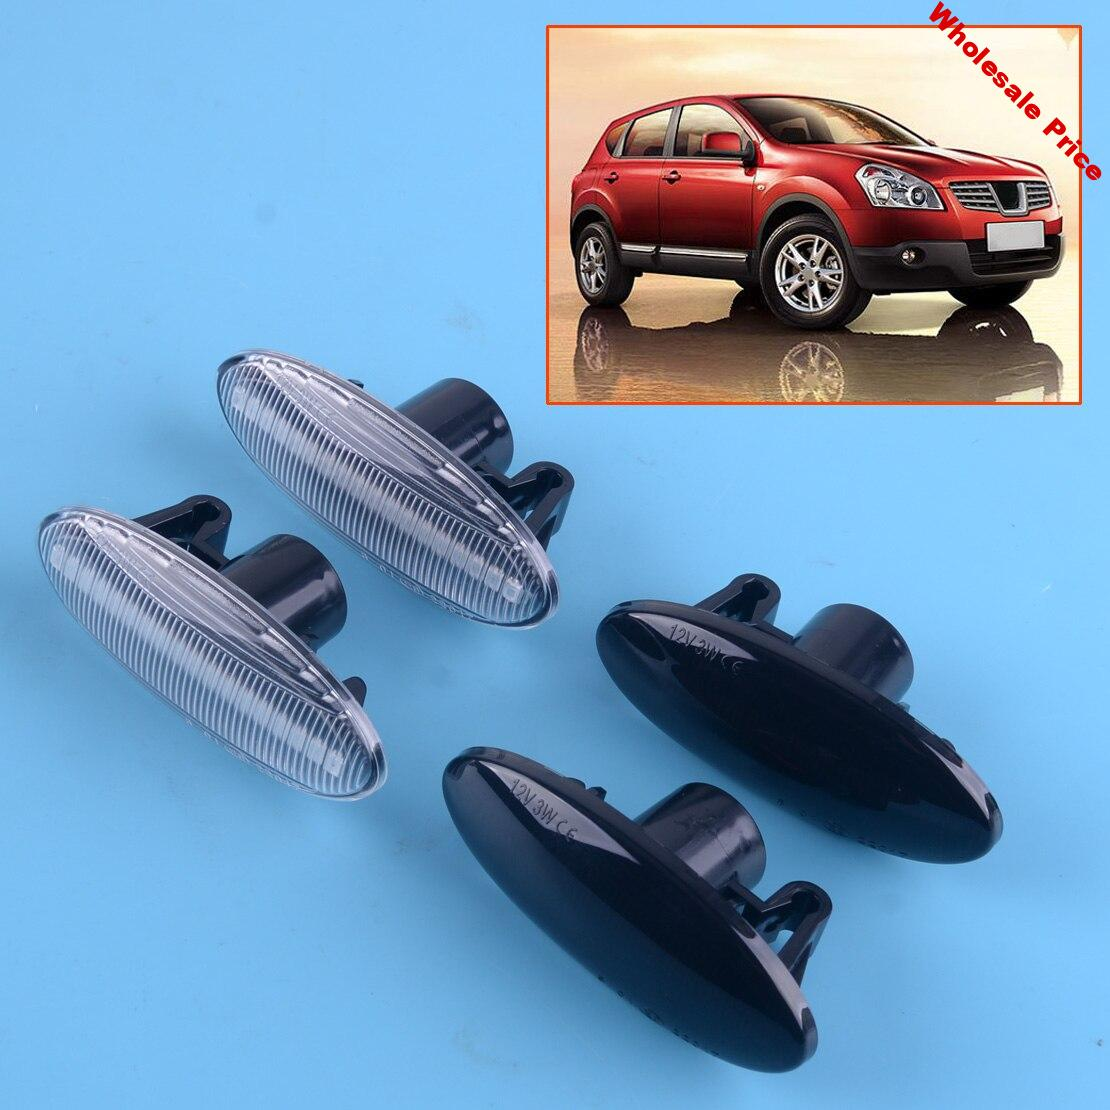 beler 1 Pair Amber Fender Light LED Dynamic Sequential Marker Turn Signal Lamp fit for Nissan Juke Qashqai Cube X-trail